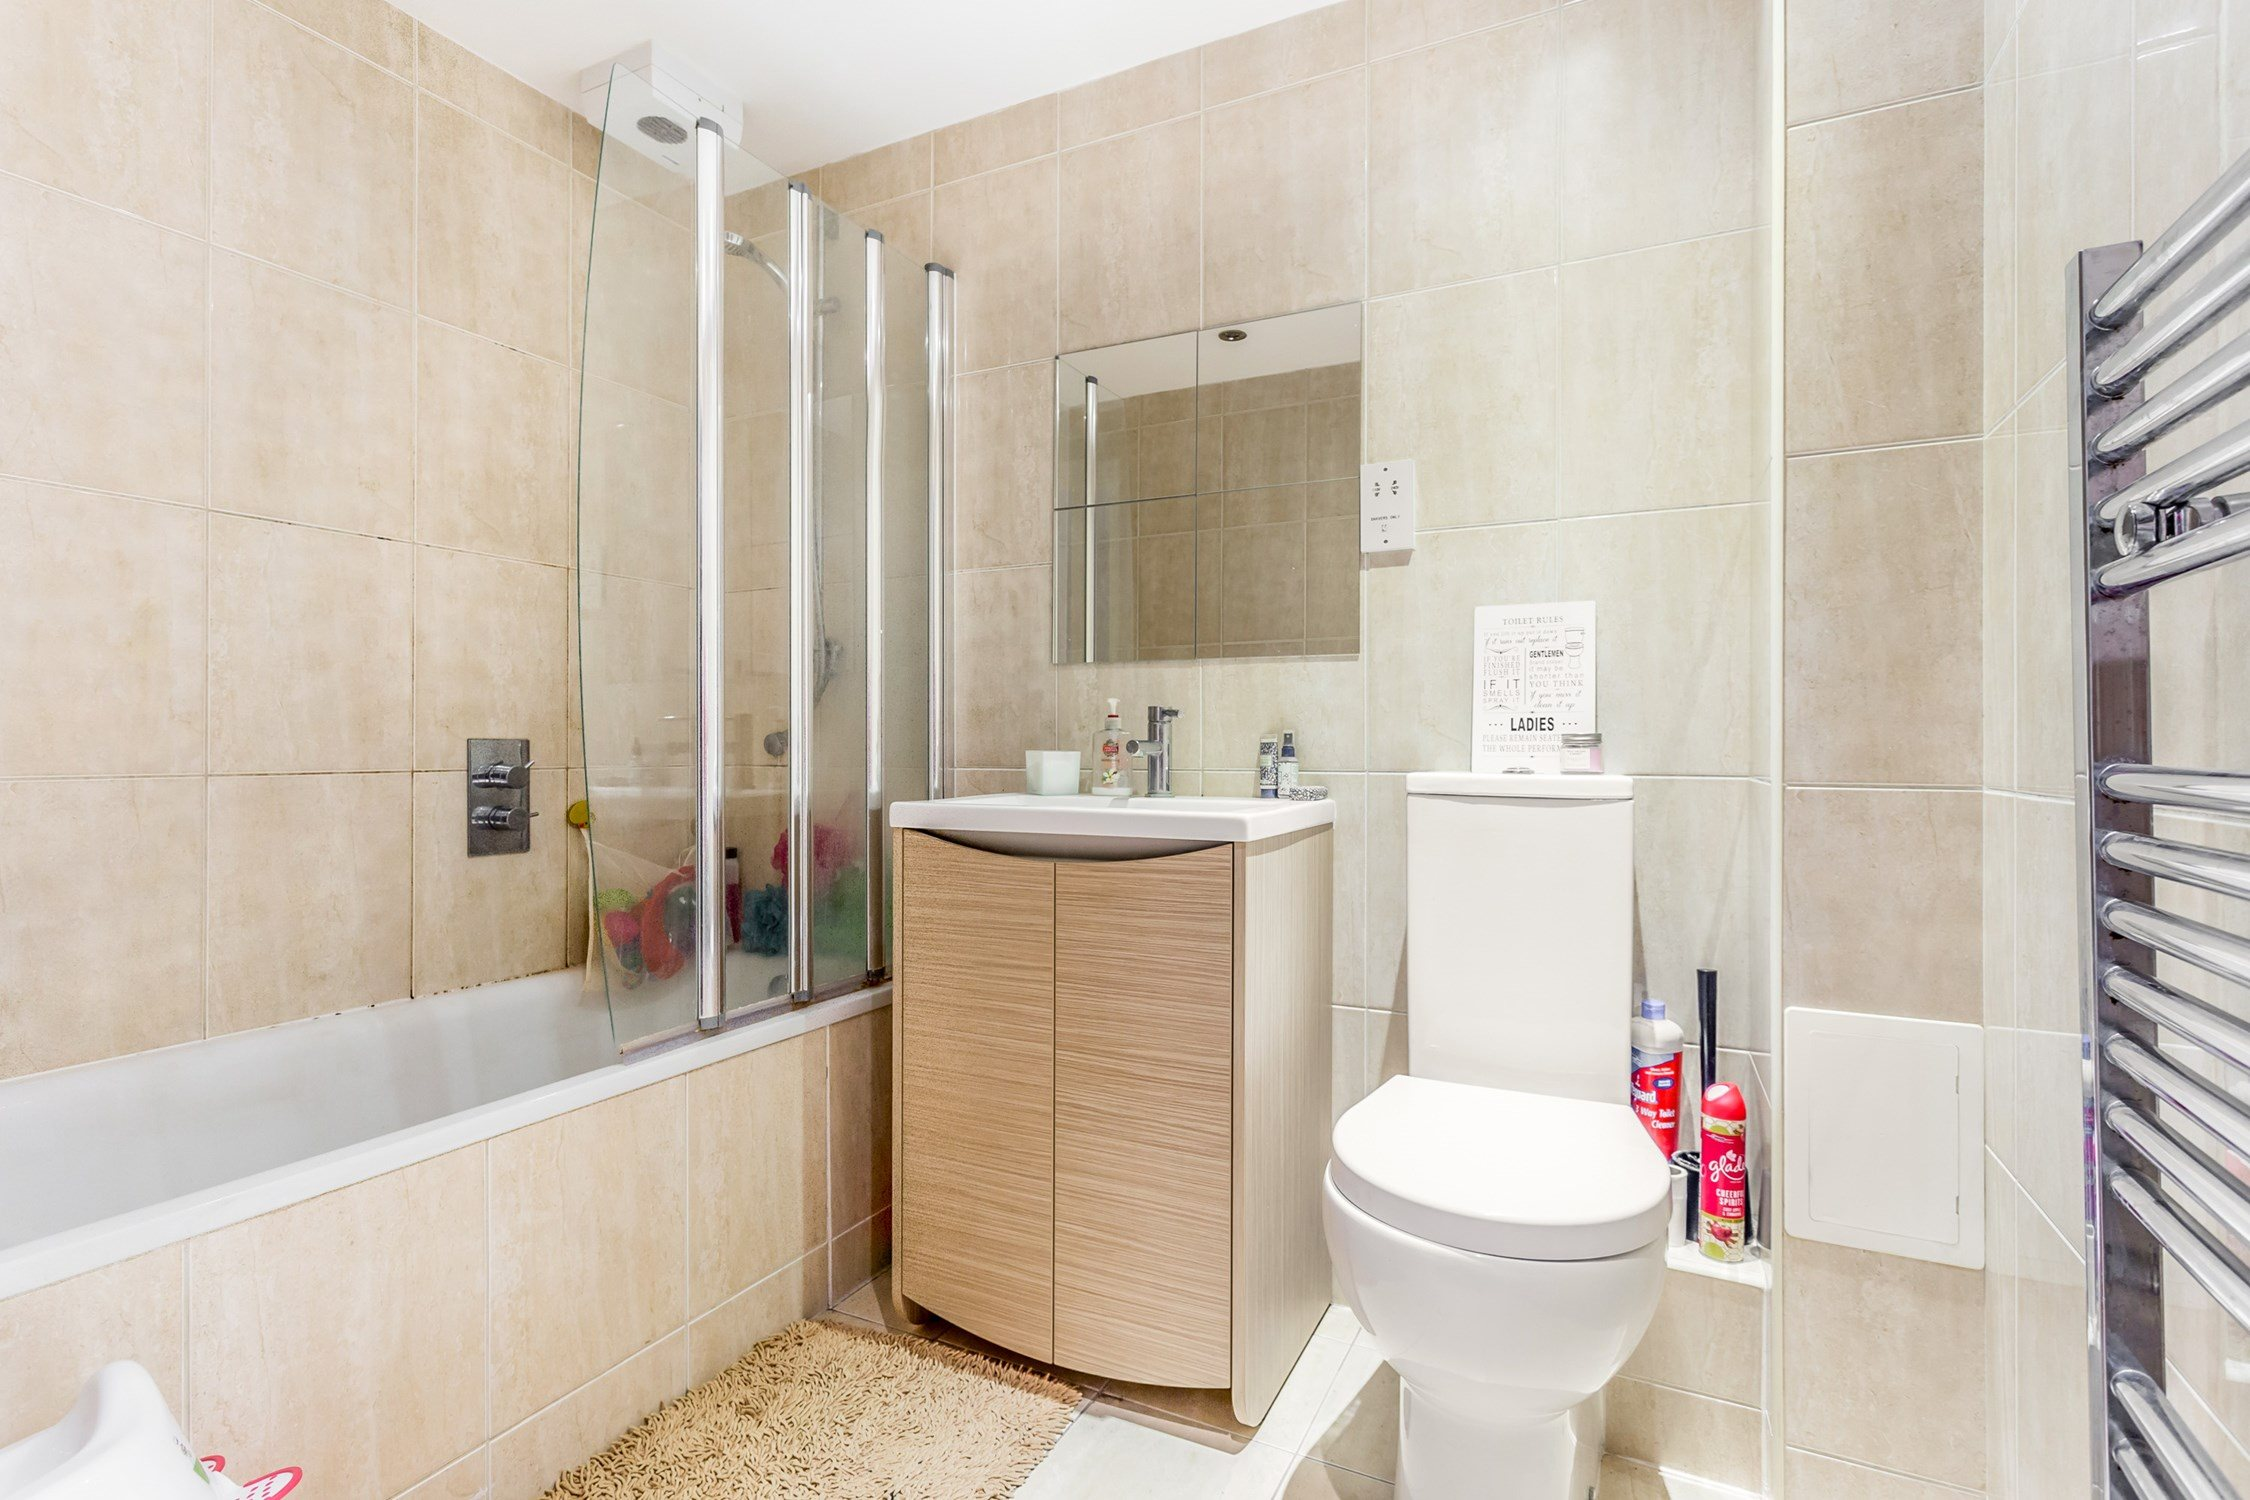 Portico - 2 Bedroom Flat recently let in Highams Park: Church Avenue ...